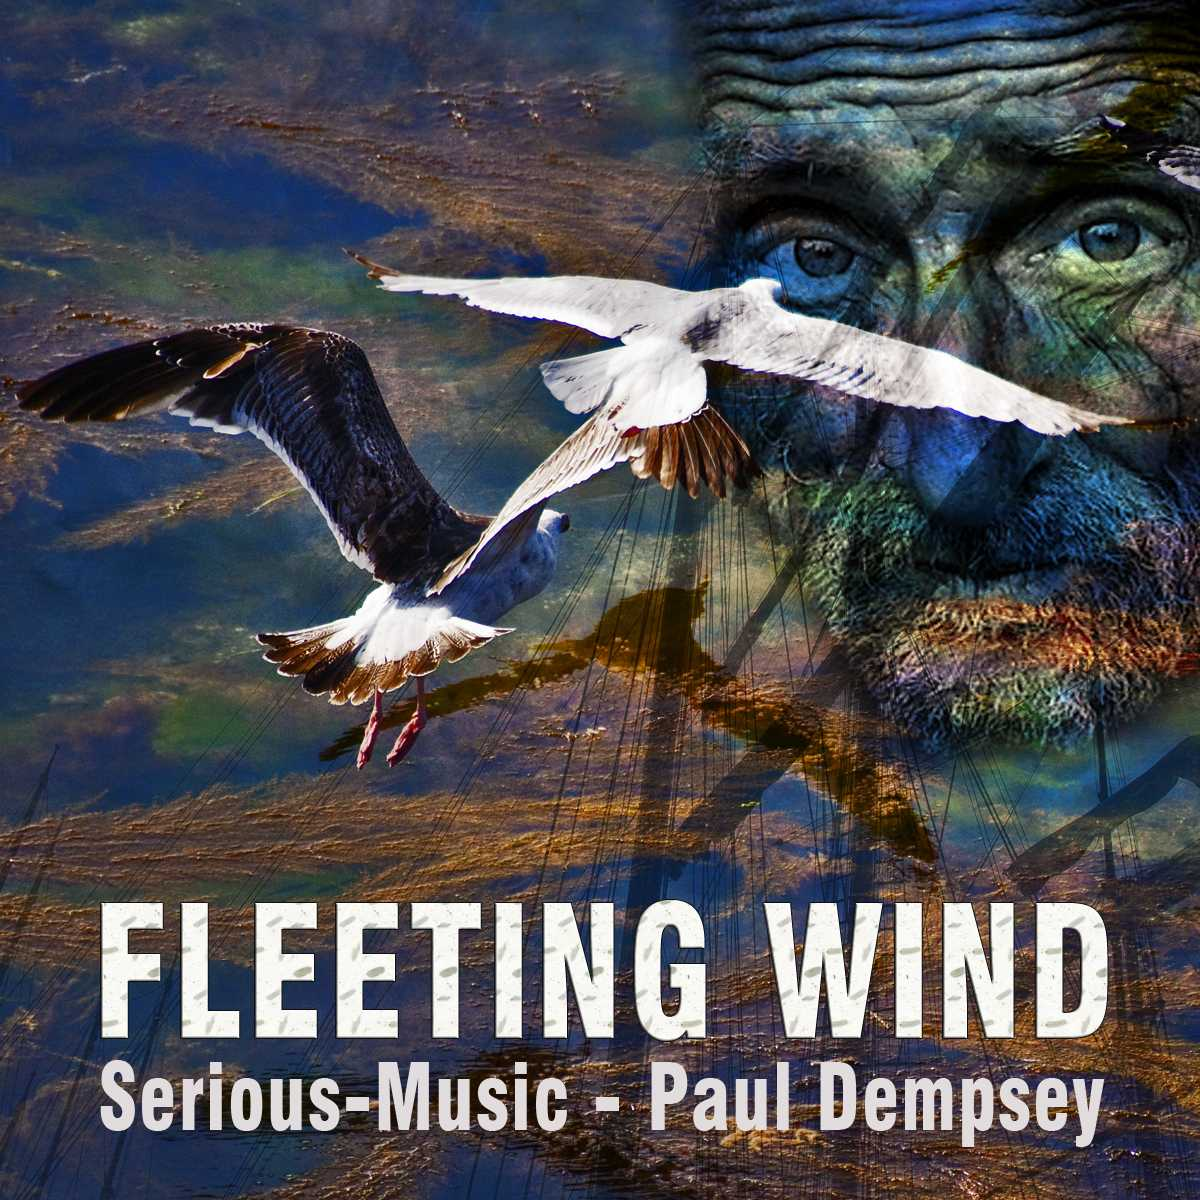 Fleeting Wind feat. Paul Dempsey - Album ECHOES OF YESTERDAY